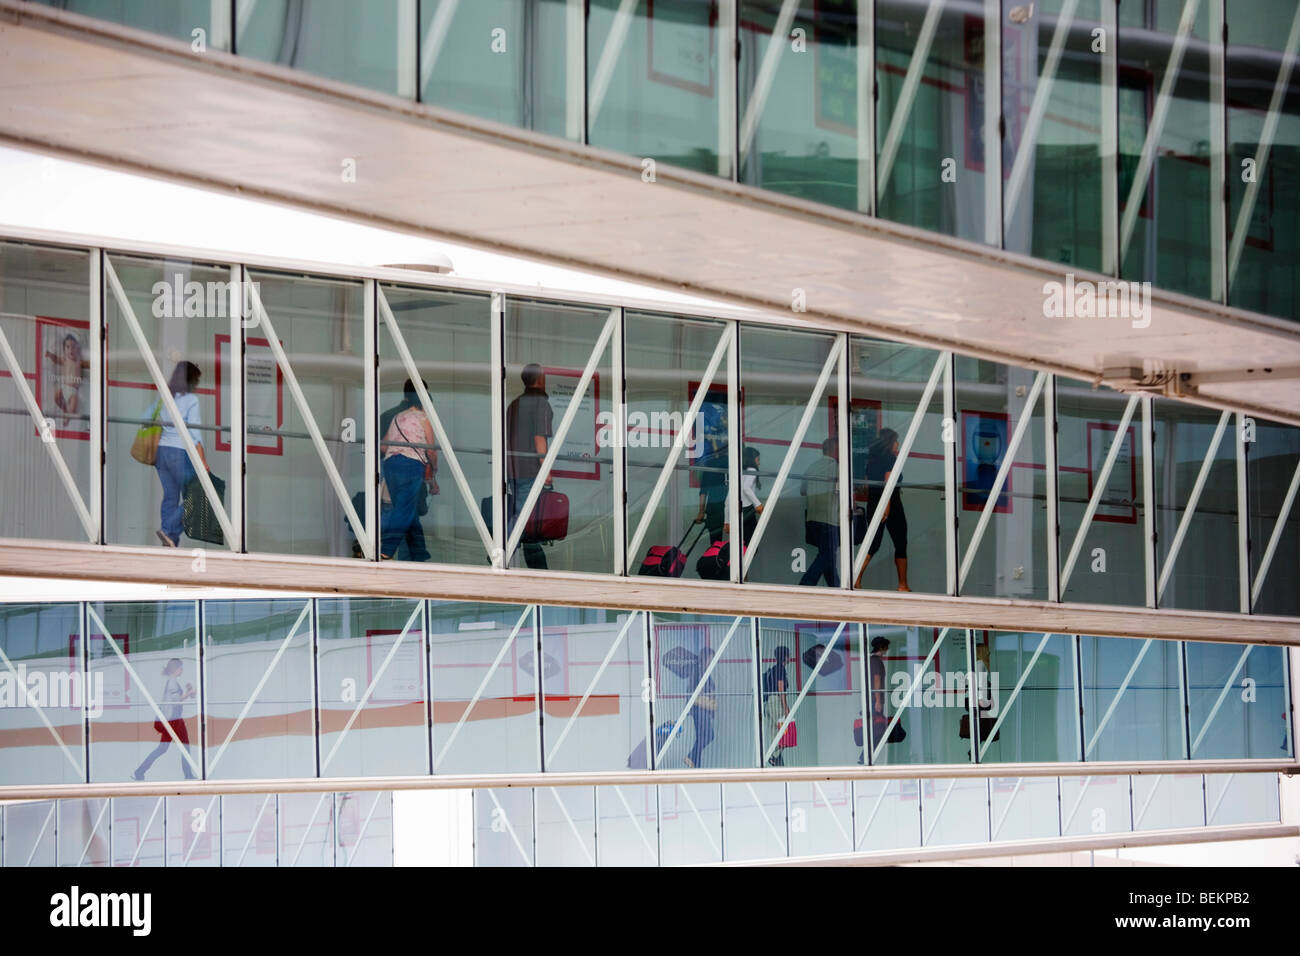 Airline passengers make their way along jetties from their newly-arrived aircraft, towards arrivals concourse, Heathrow - Stock Image